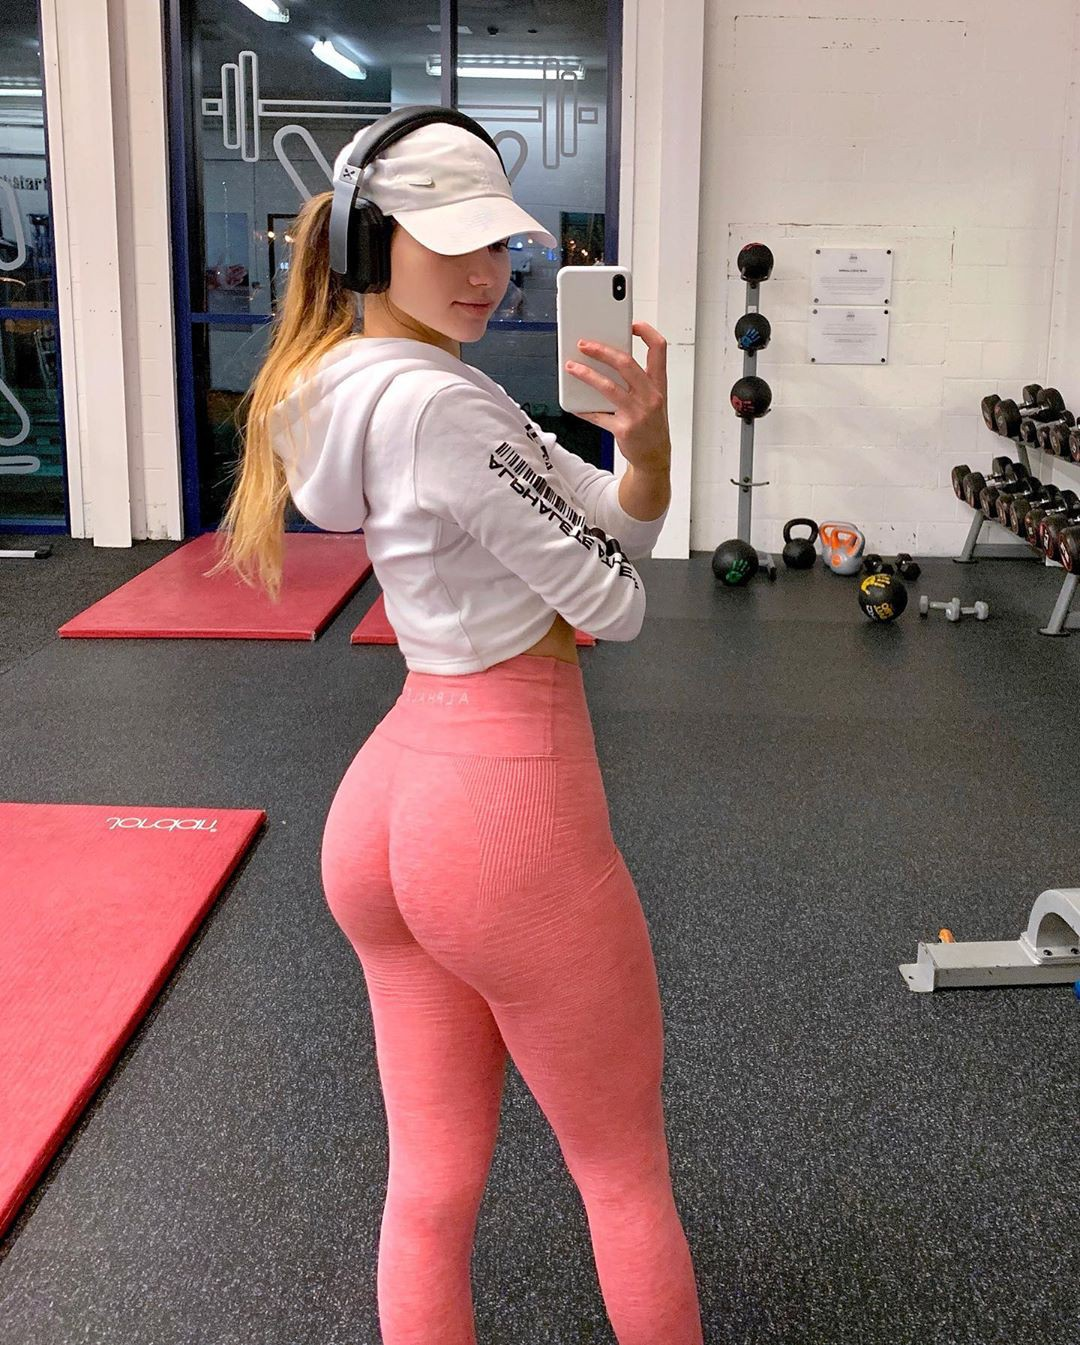 pink outfits for women with sportswear, leggings, tights